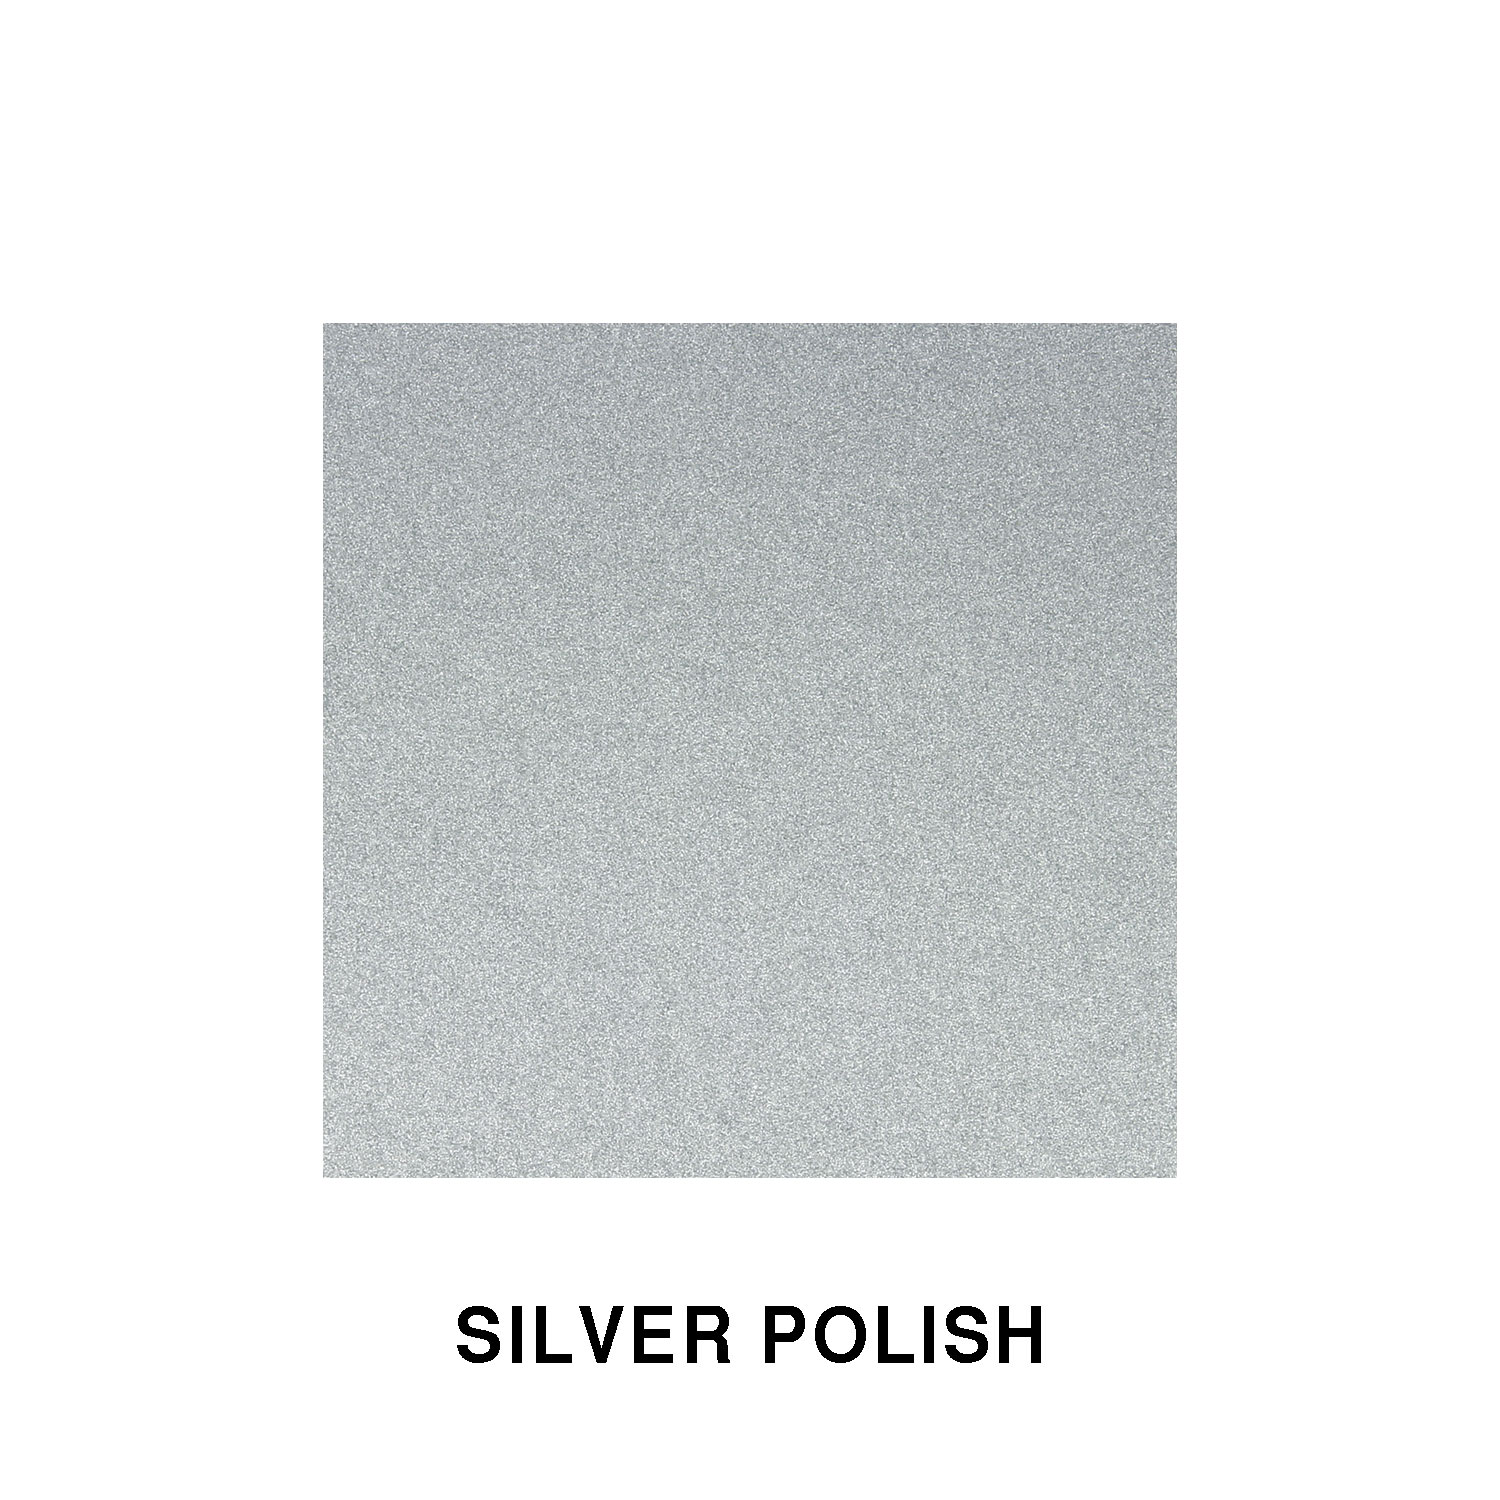 Silver Polish Fiberglass Finish